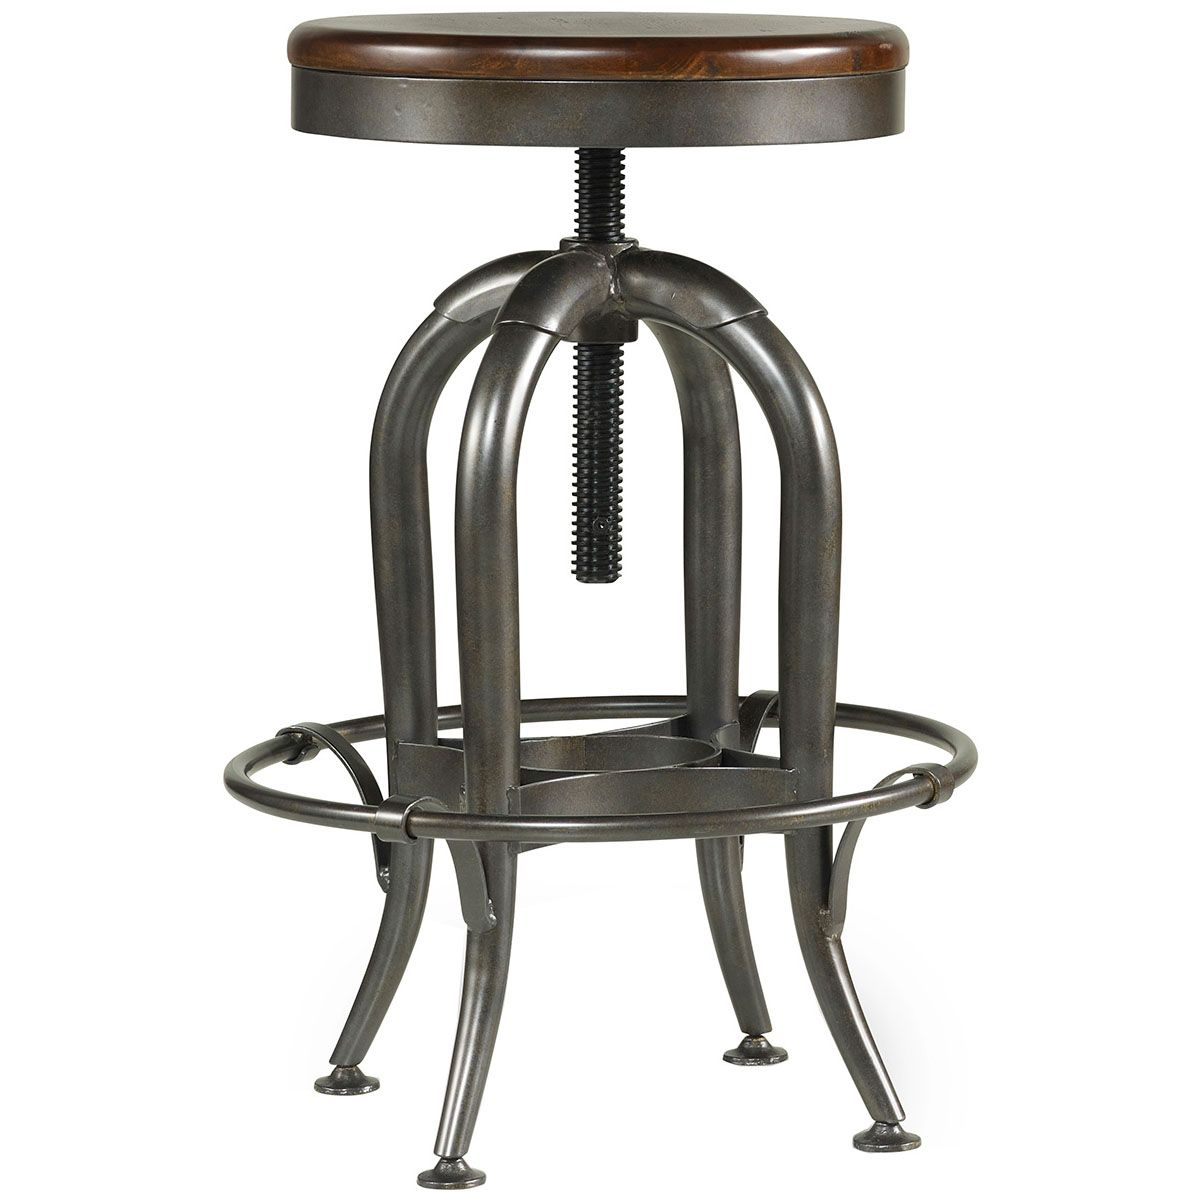 Excellent Hooker Furniture Wendover Adjustable Height Stool 1037 31455 Ncnpc Chair Design For Home Ncnpcorg